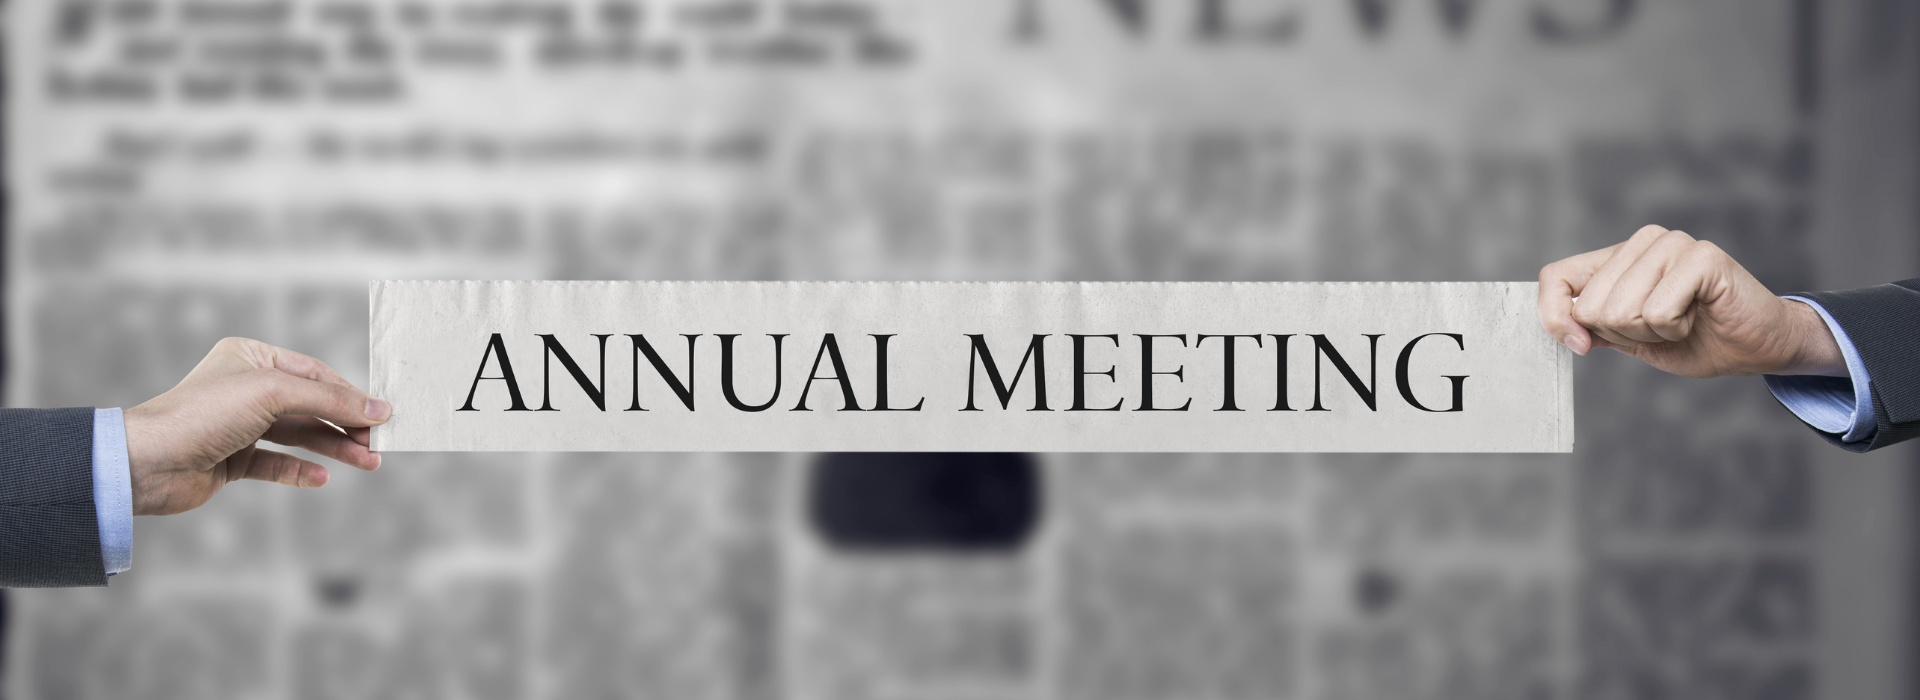 Annual Meeting - landing page.png